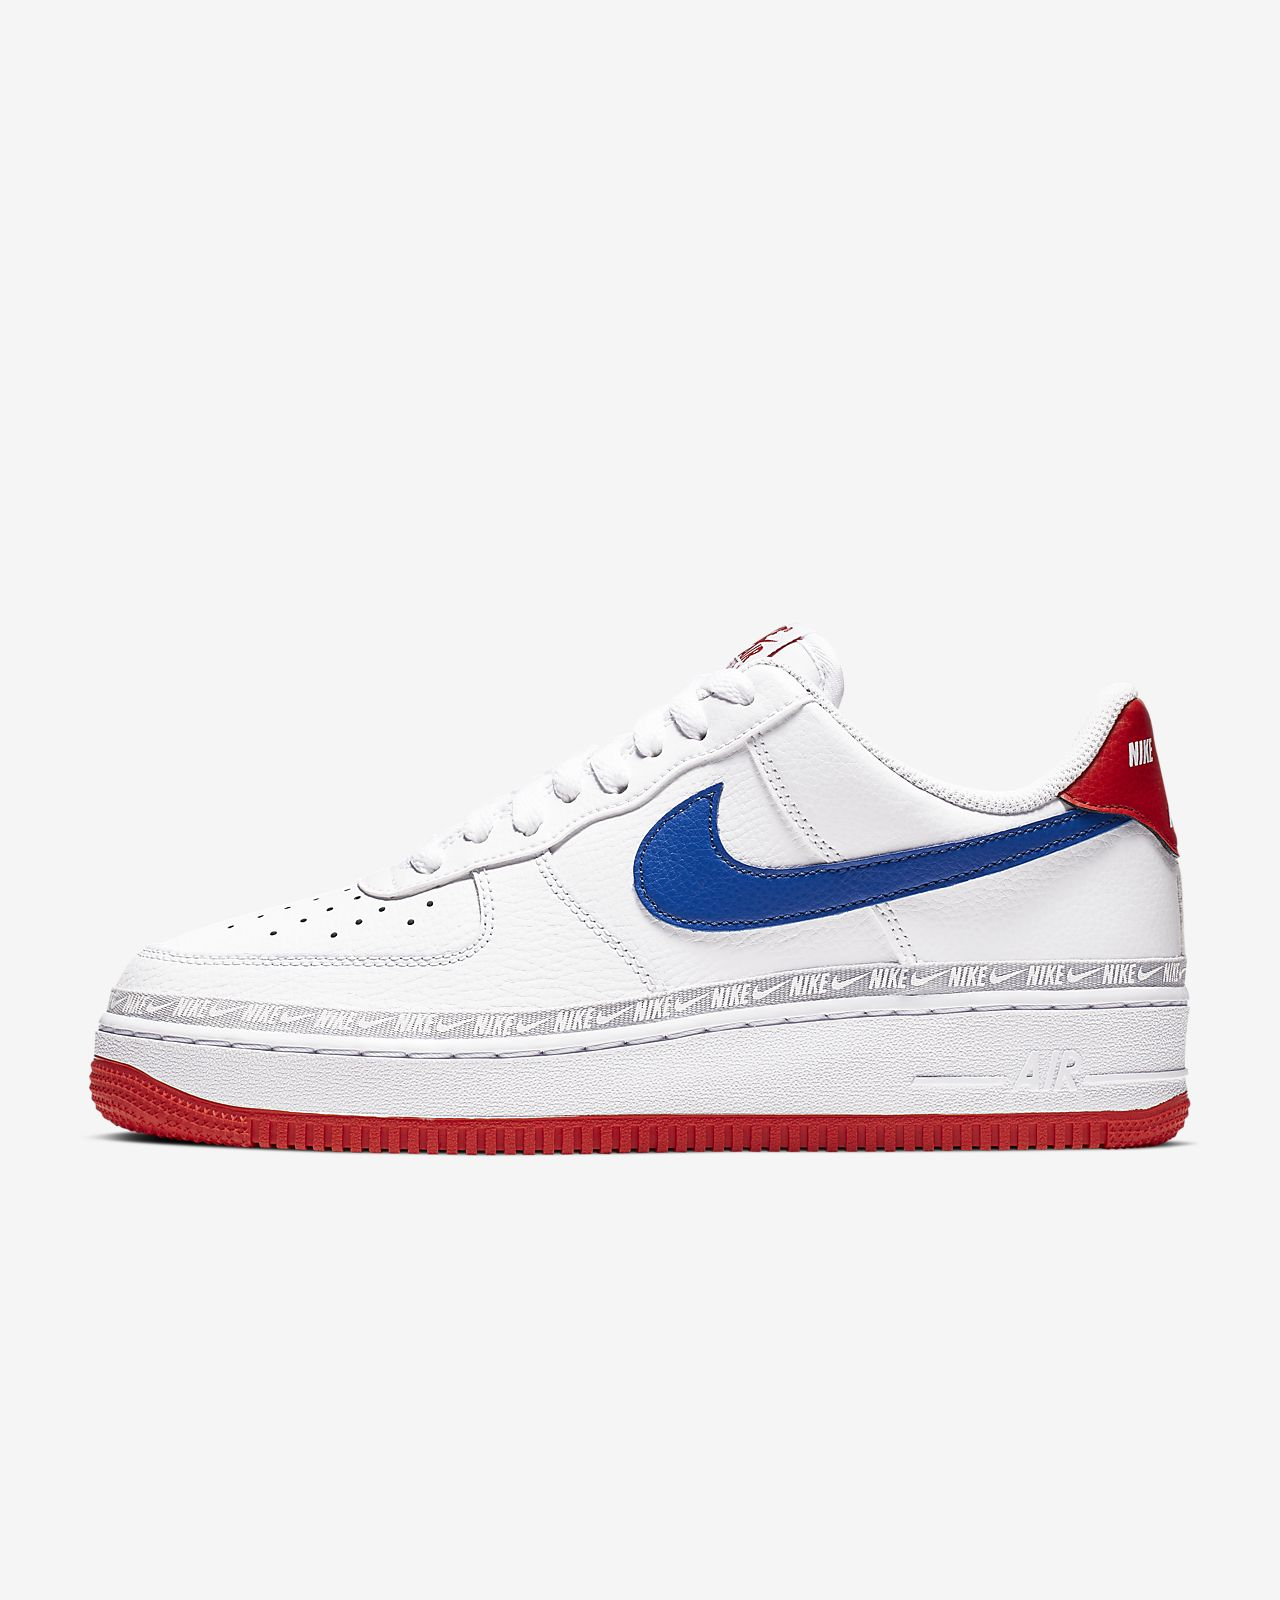 reputable site c81ed 57777 ... Chaussure Nike Air Force 1  07 LV8 pour Homme